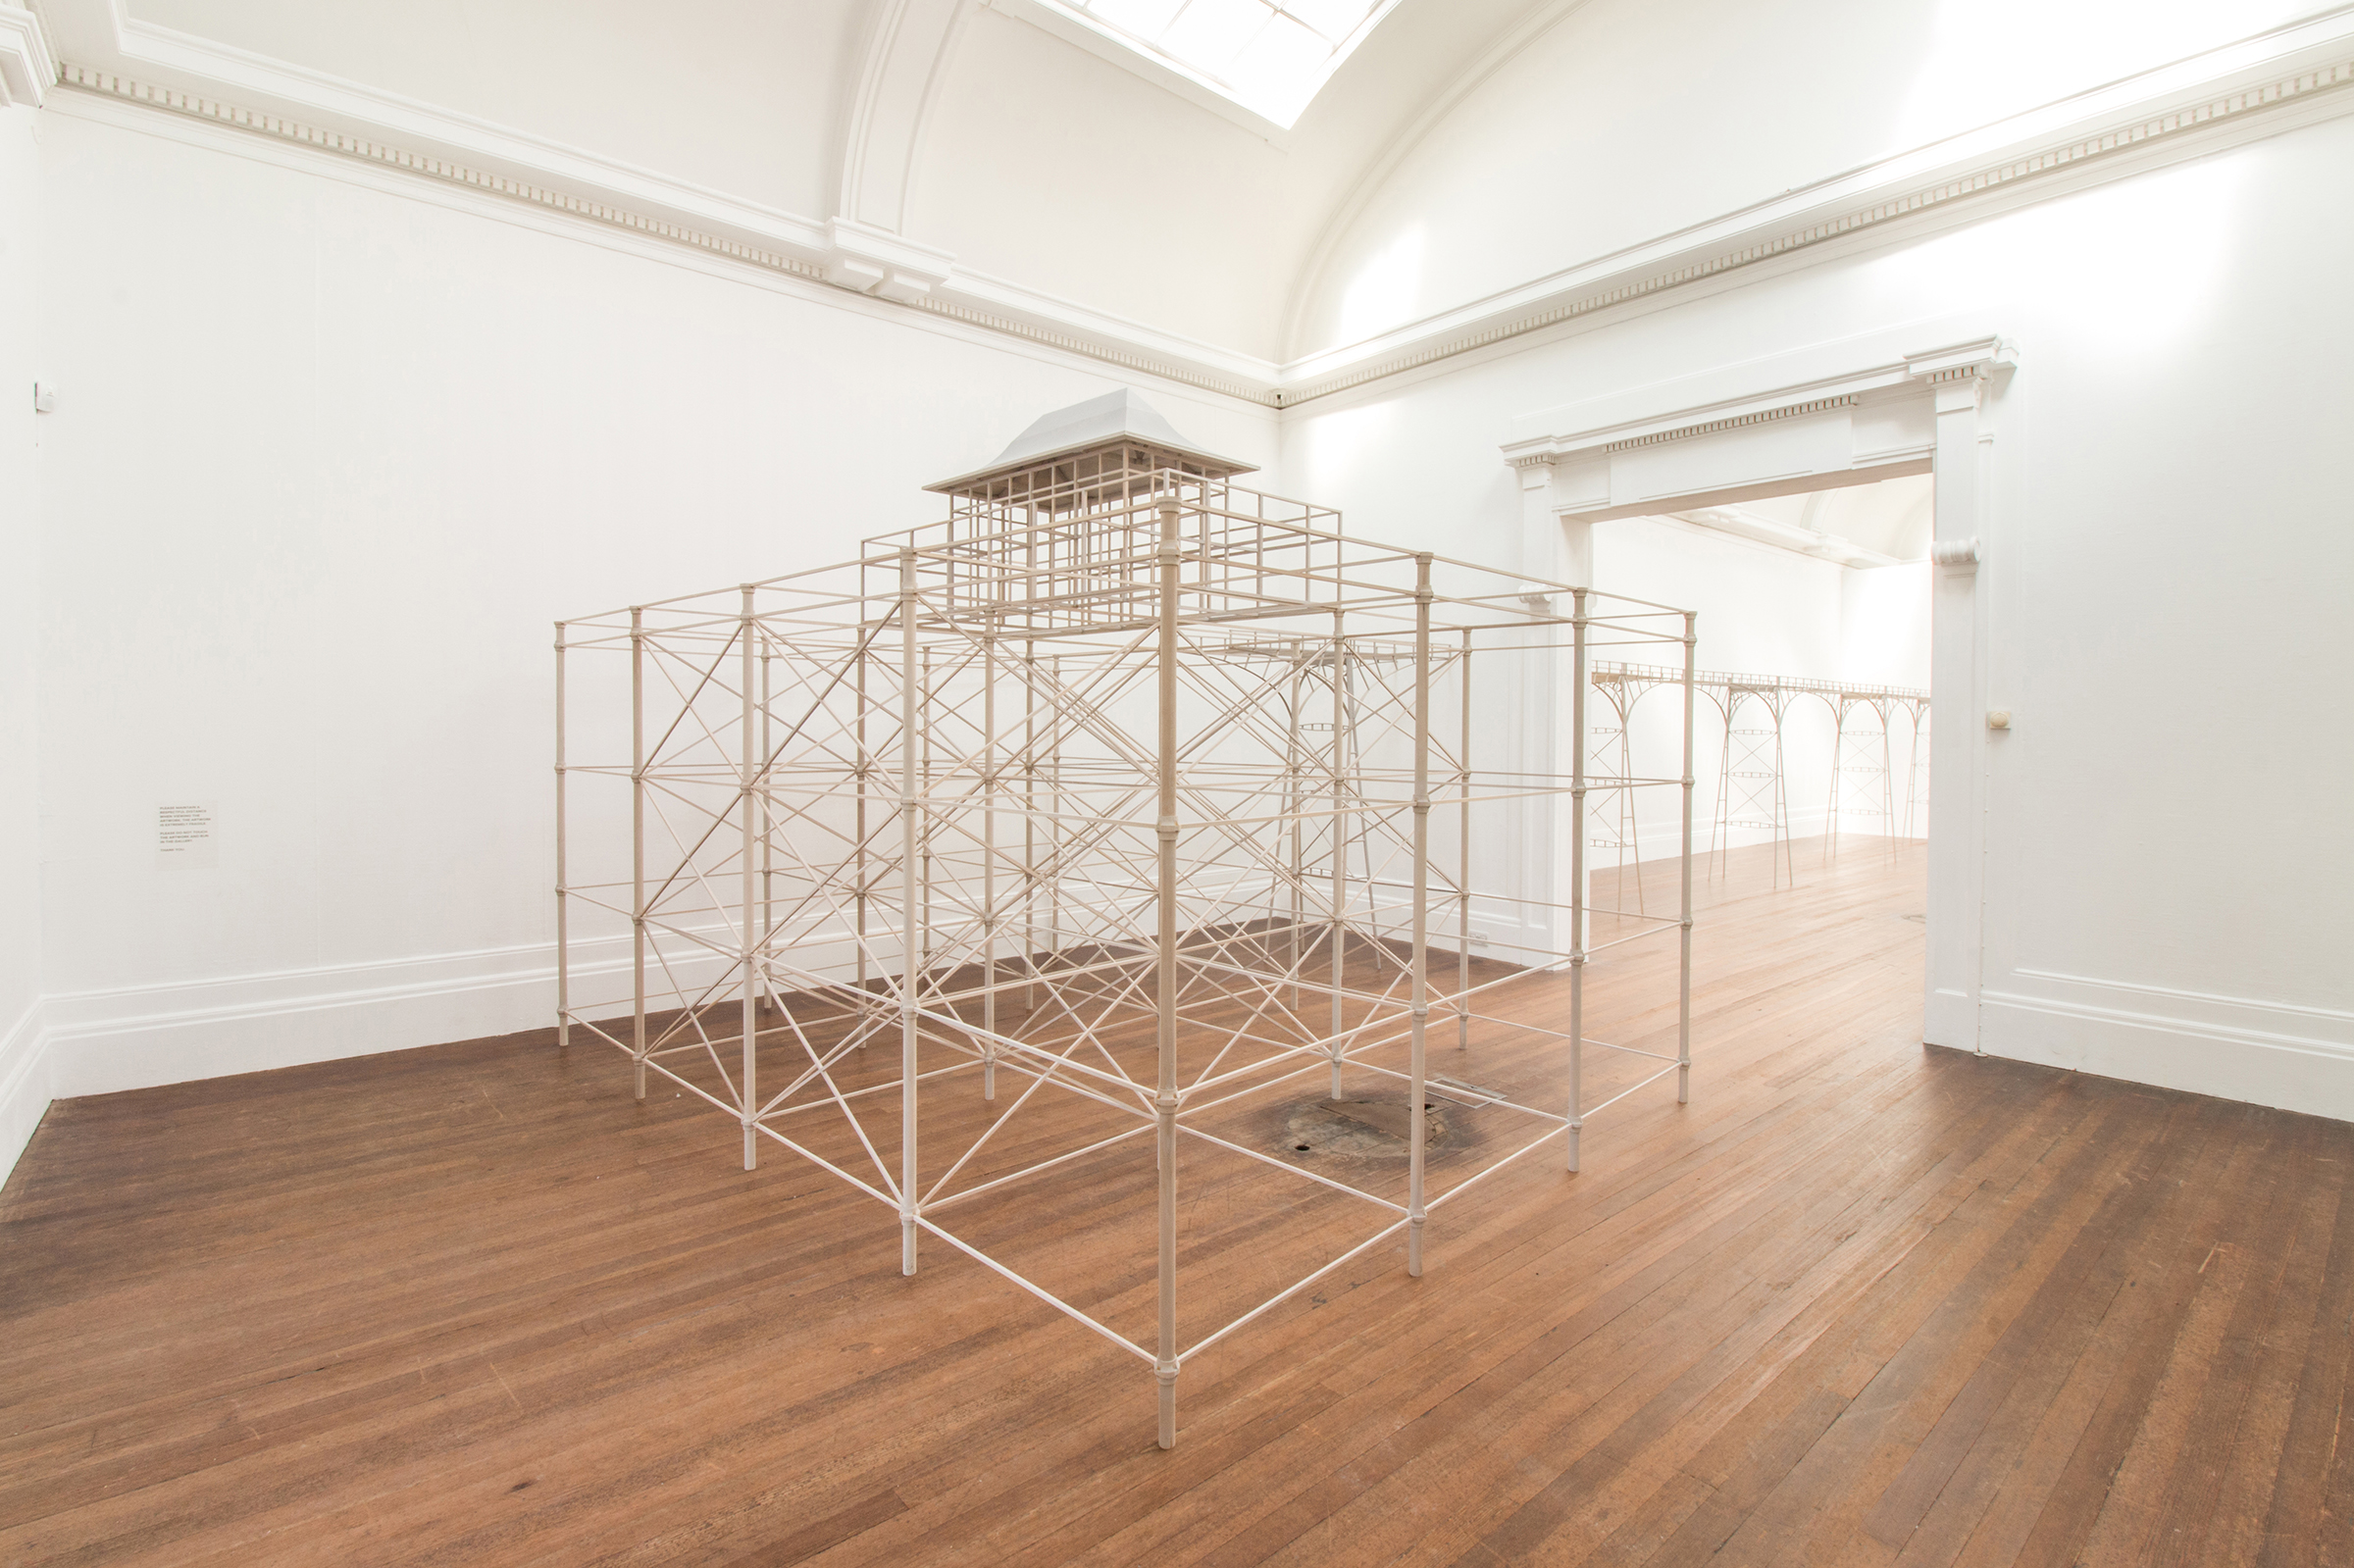 Roy Voss, The Way Things Are (installation shot) at Grundy Art Gallery, Blackpool